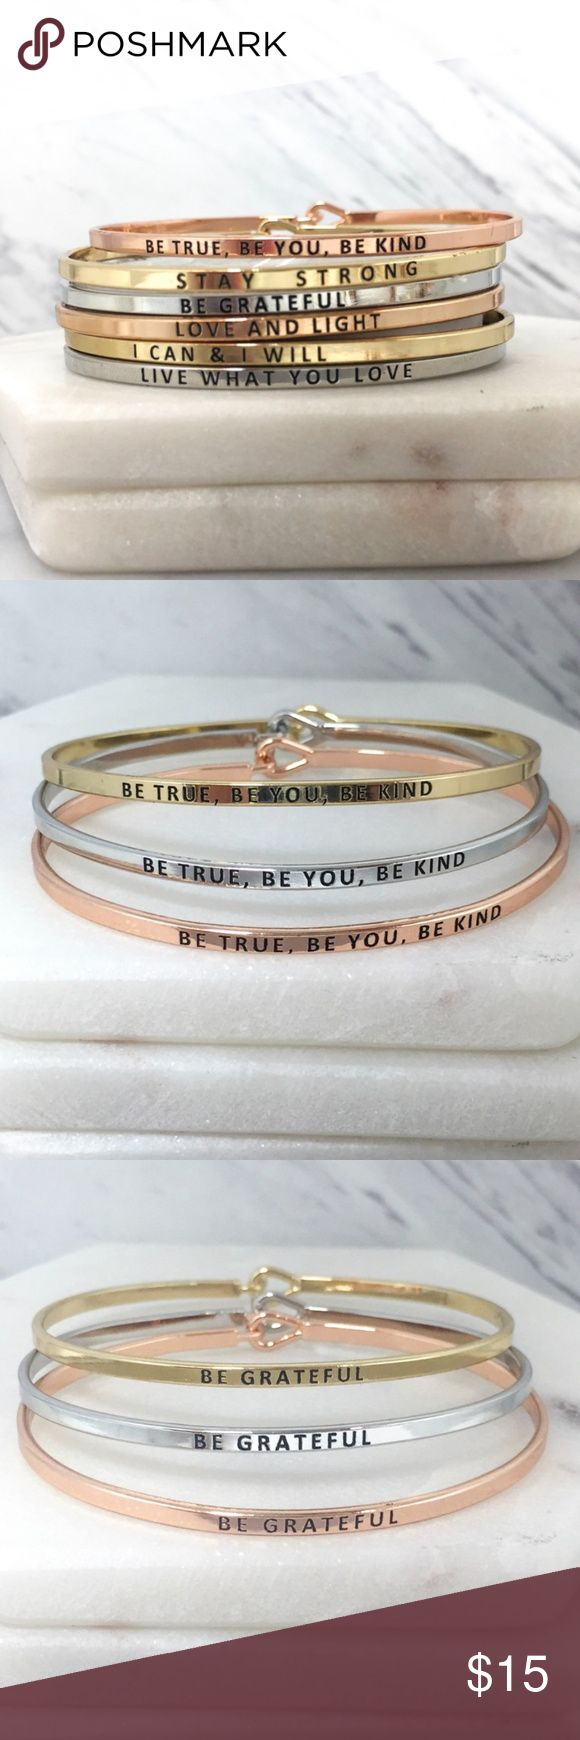 """Inspirational Mantra Motivational Saying Bracelet Skinny mantra bangle bracelet. Buy multiple and stack them all! Hook closure. Stackable inspirational bracelets.  60 mm X 45 mm Diameter: 2.75 inches  """"STAY STRONG"""" """"LOVE AND LIGHT"""" """"LIVE WHAT YOU LOVE"""" """"BE TRUE, BE YOU, BE KIND"""" """"BE GRATEFUL"""" """"I CAN & I WILL All words are available in silver, gold, and rose gold. Please indicate in the comment section, the saying you want and it what color. Don't forget to make an offer. You can also place…"""